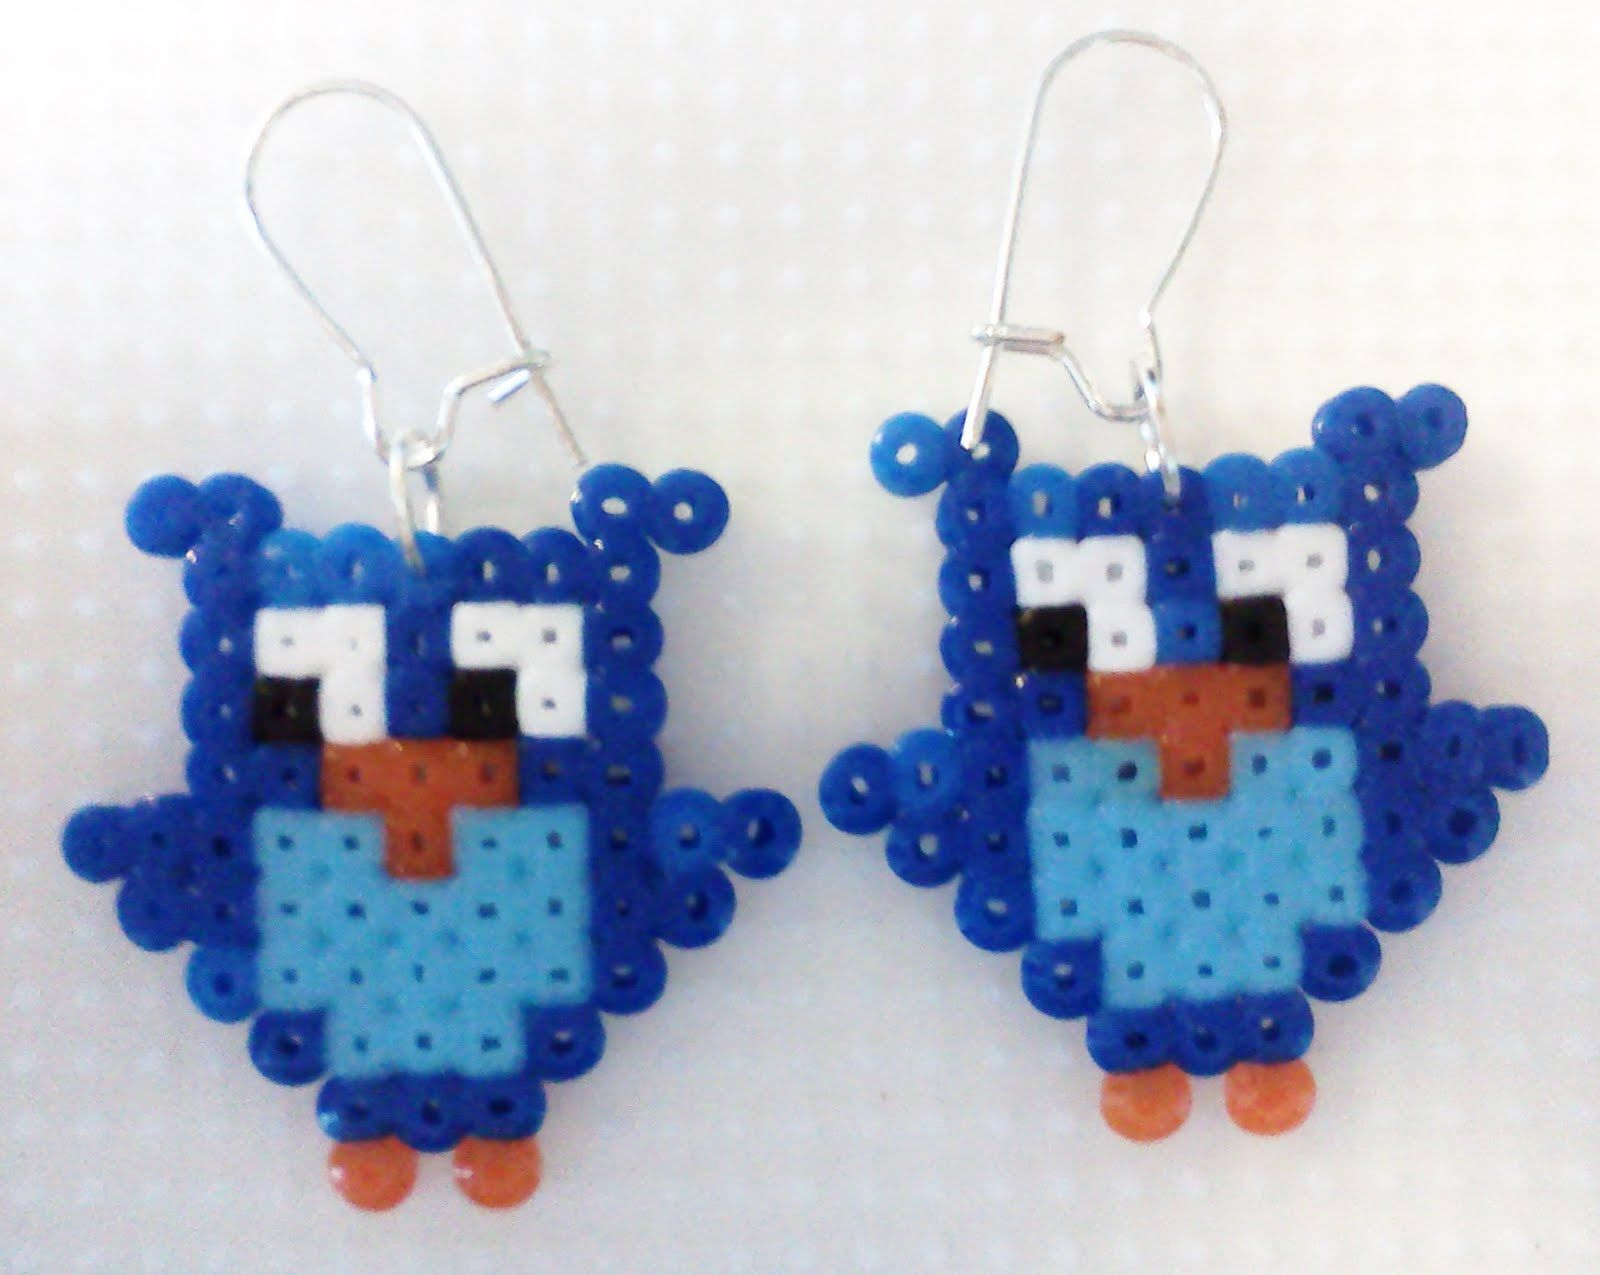 owls mini hama beads diy enfants pinterest hama perles hama et perles. Black Bedroom Furniture Sets. Home Design Ideas